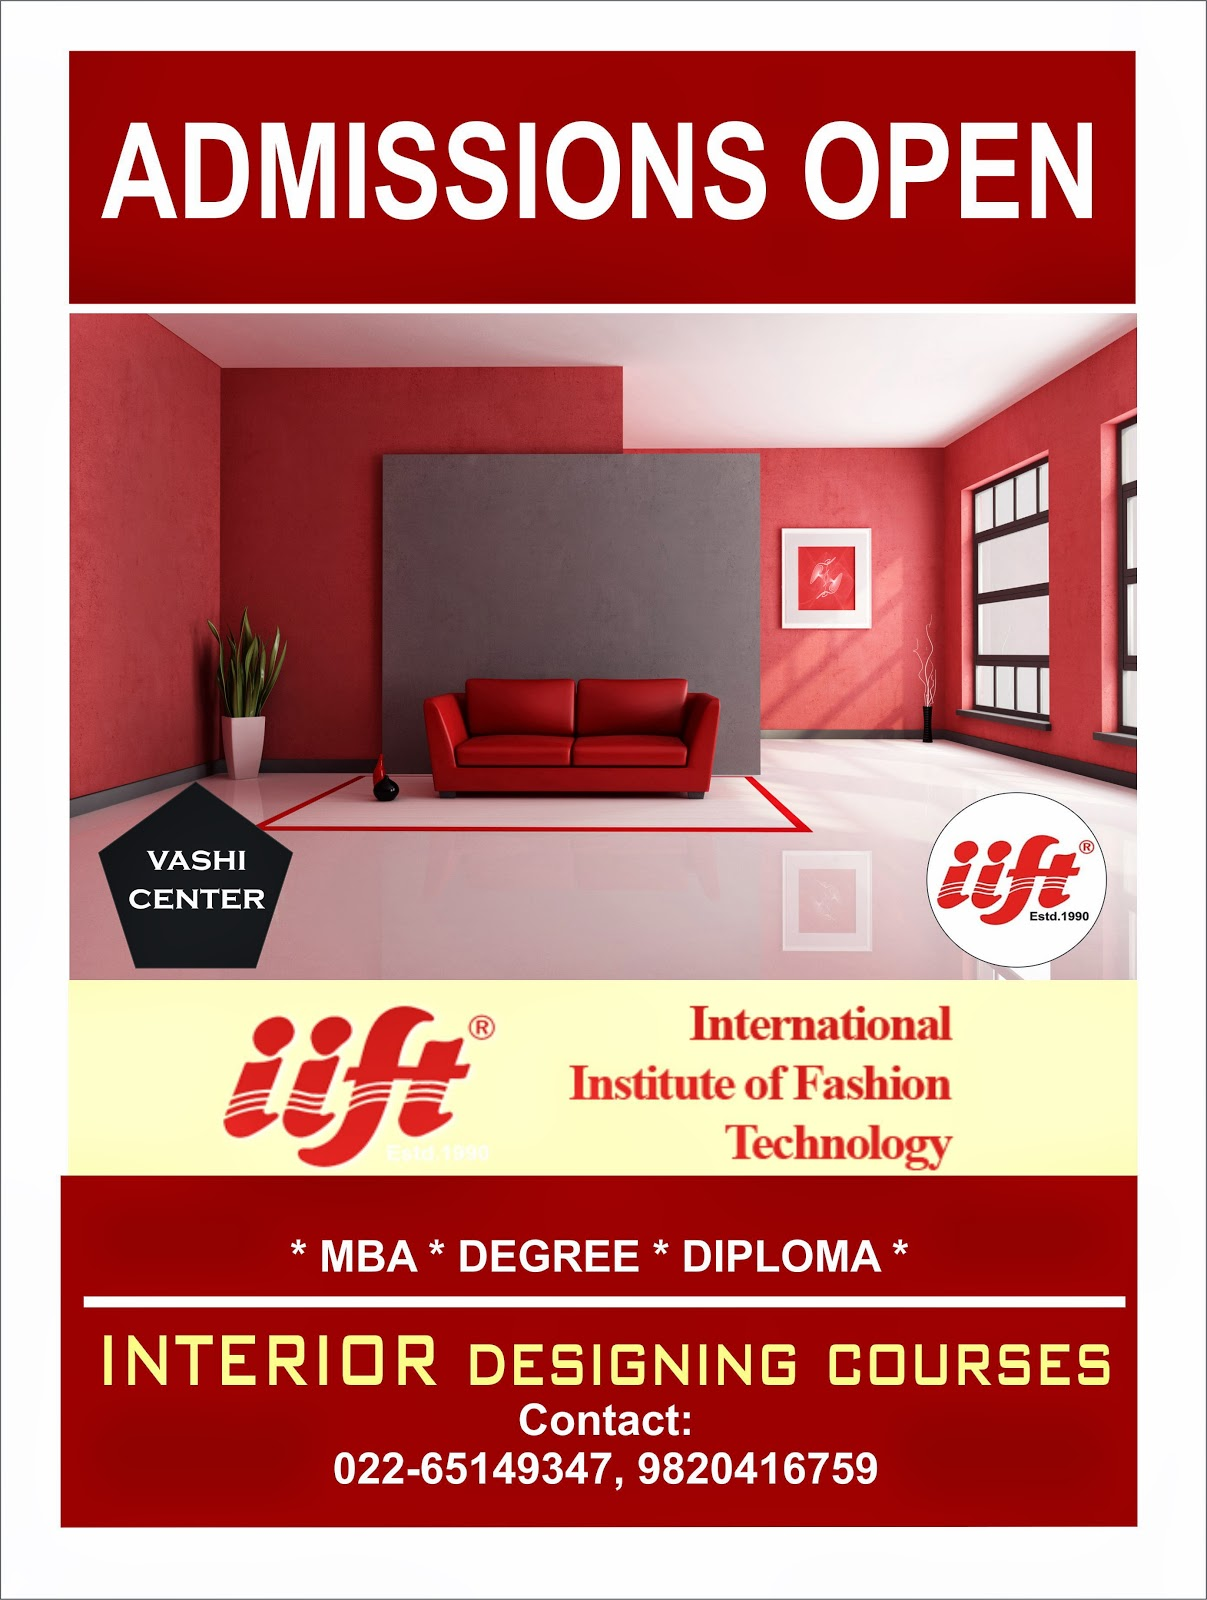 eligibility for mba in interior designing degree